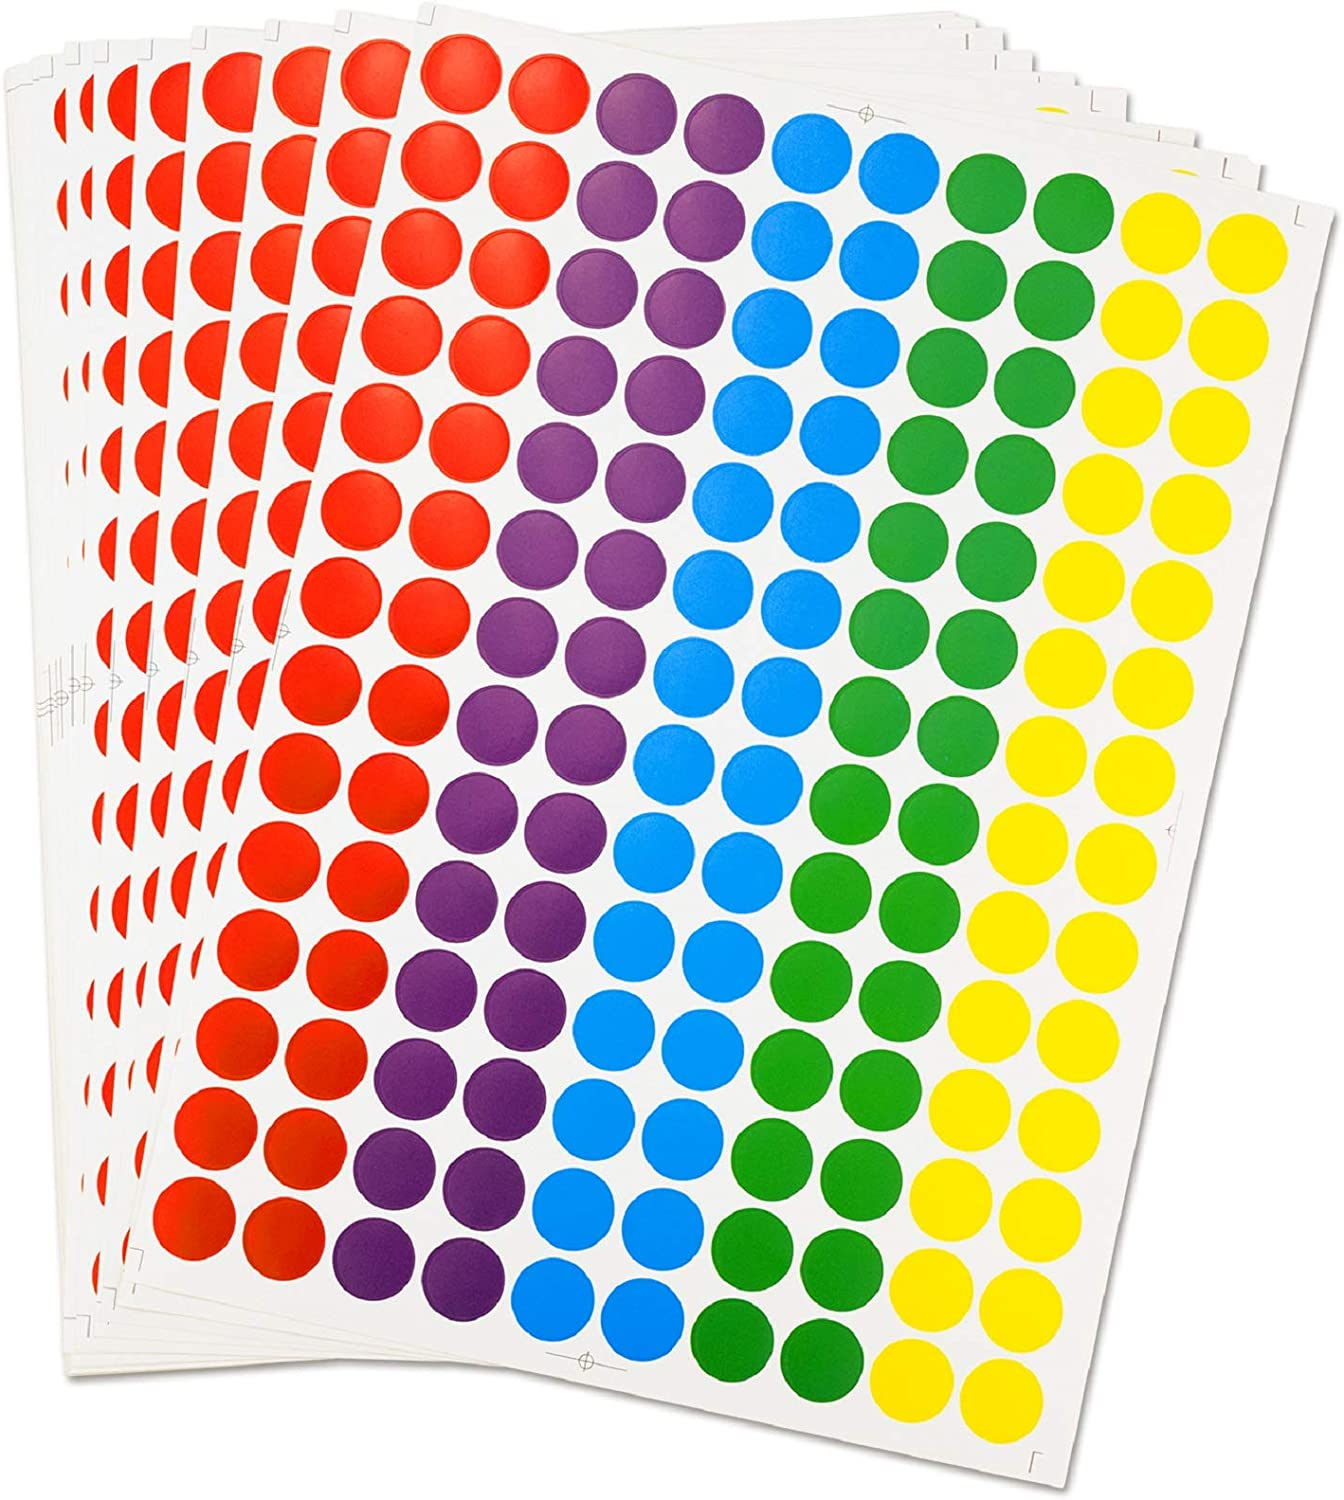 Round Stickers, EAONE Color-Code Dot Labels Removable Stickers for Write/Print, 0.75 Inch Diameter, Pack of 3500